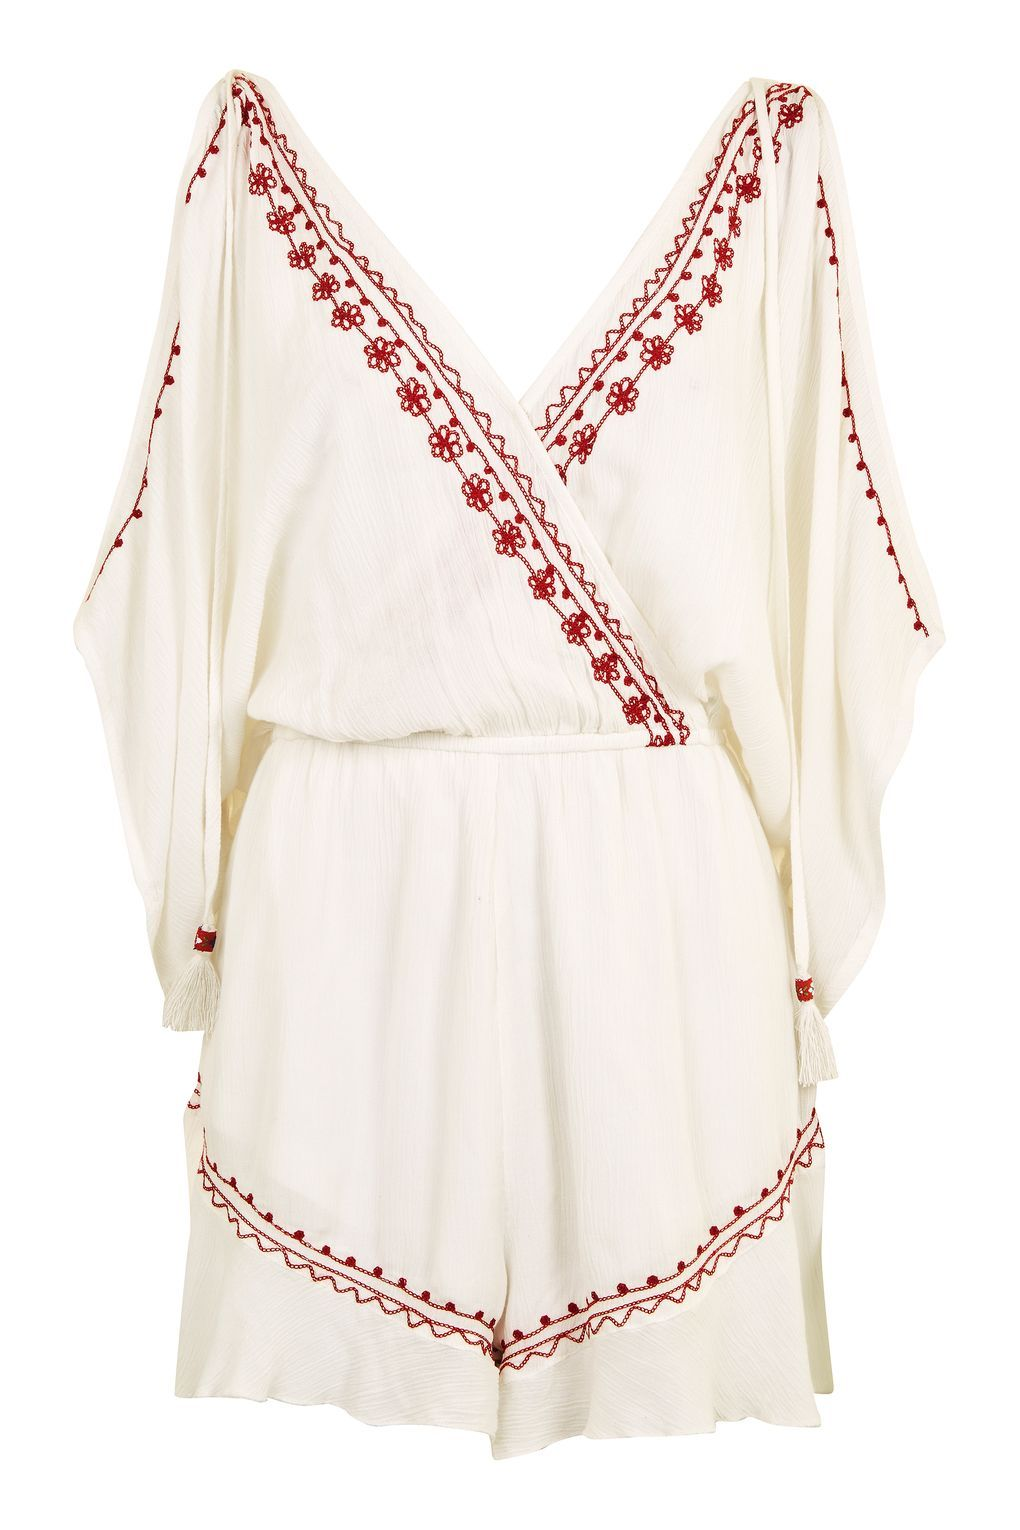 caef7b58e526 Embroidered Flower Playsuit by Band of Gypsies - Topshop Topshop Outfit